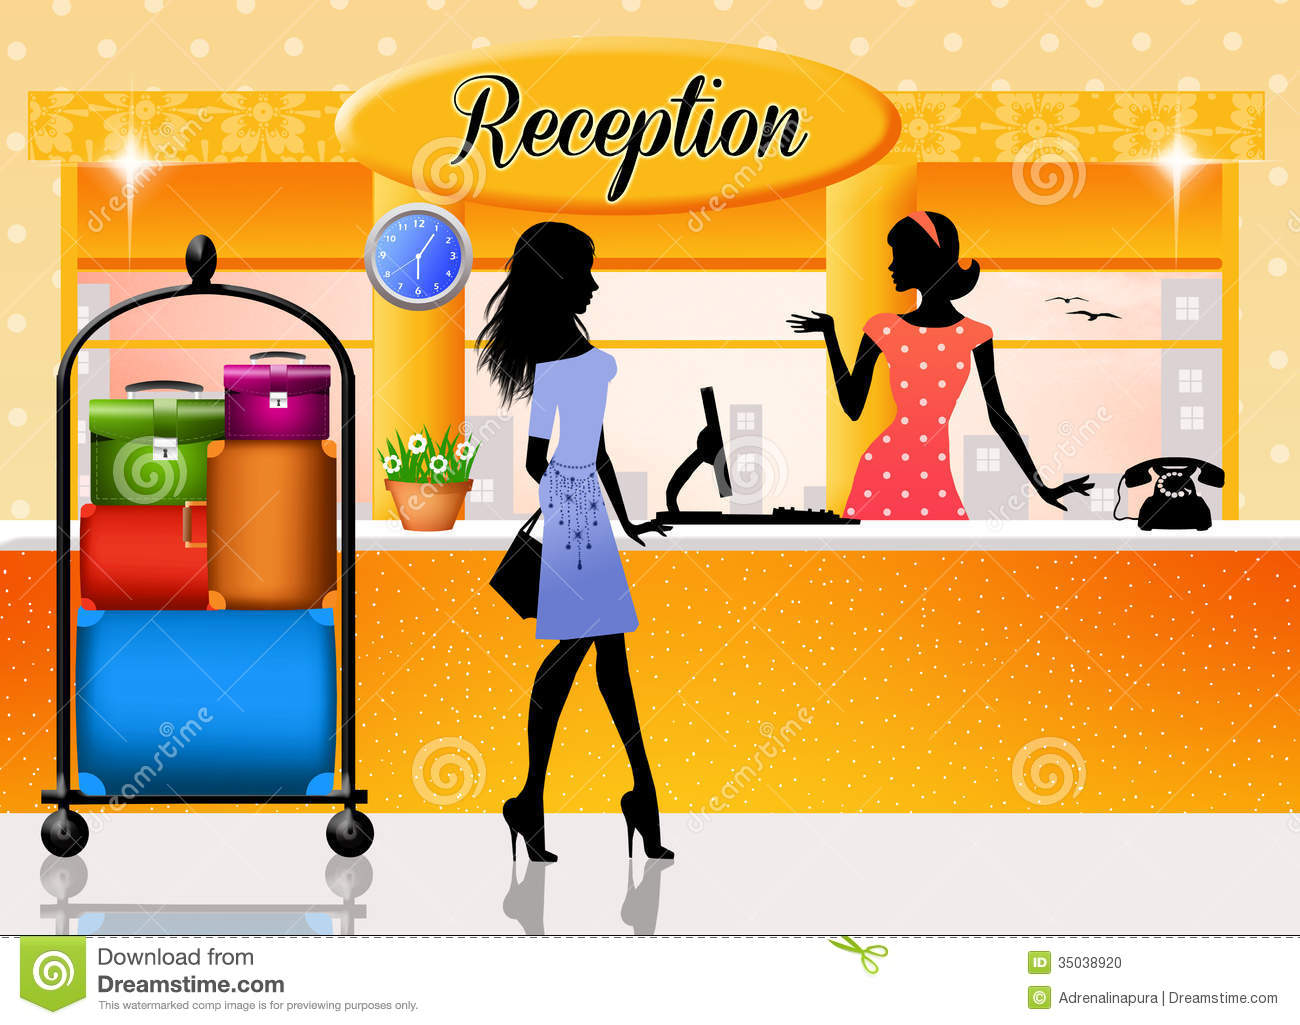 Hotel Front Desk Clipart - Clipart Kid